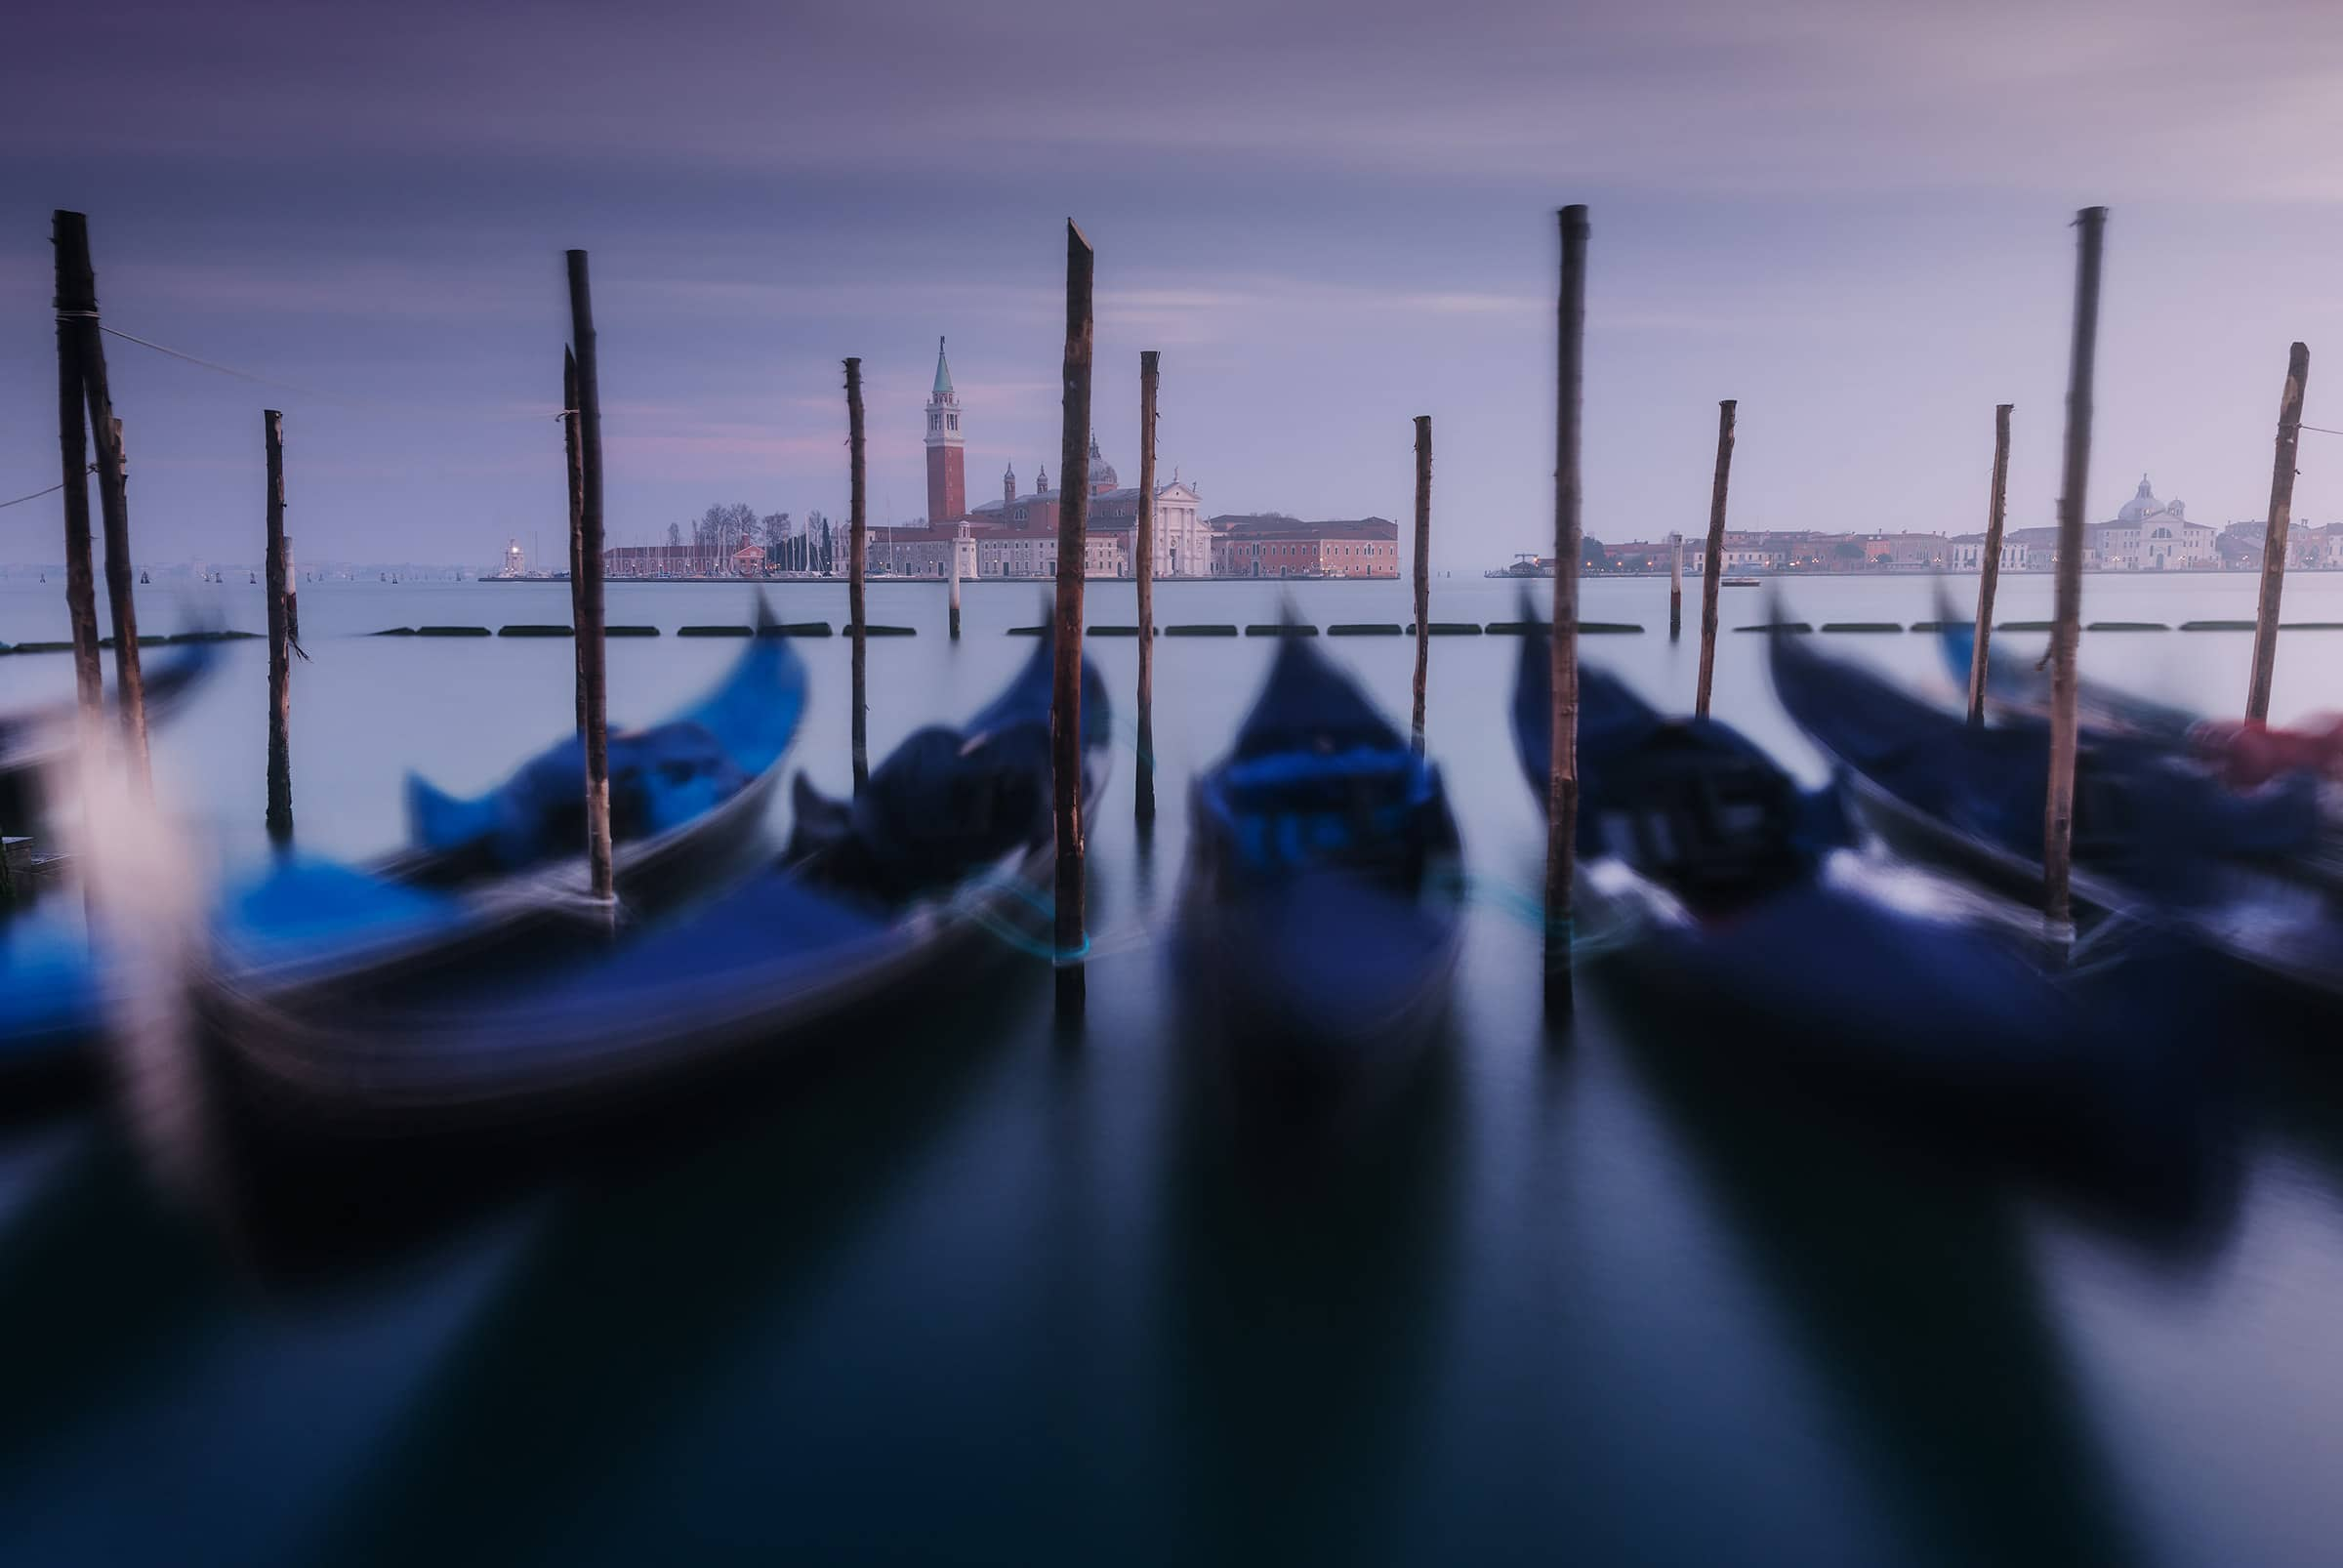 gondolas in venice photo tour